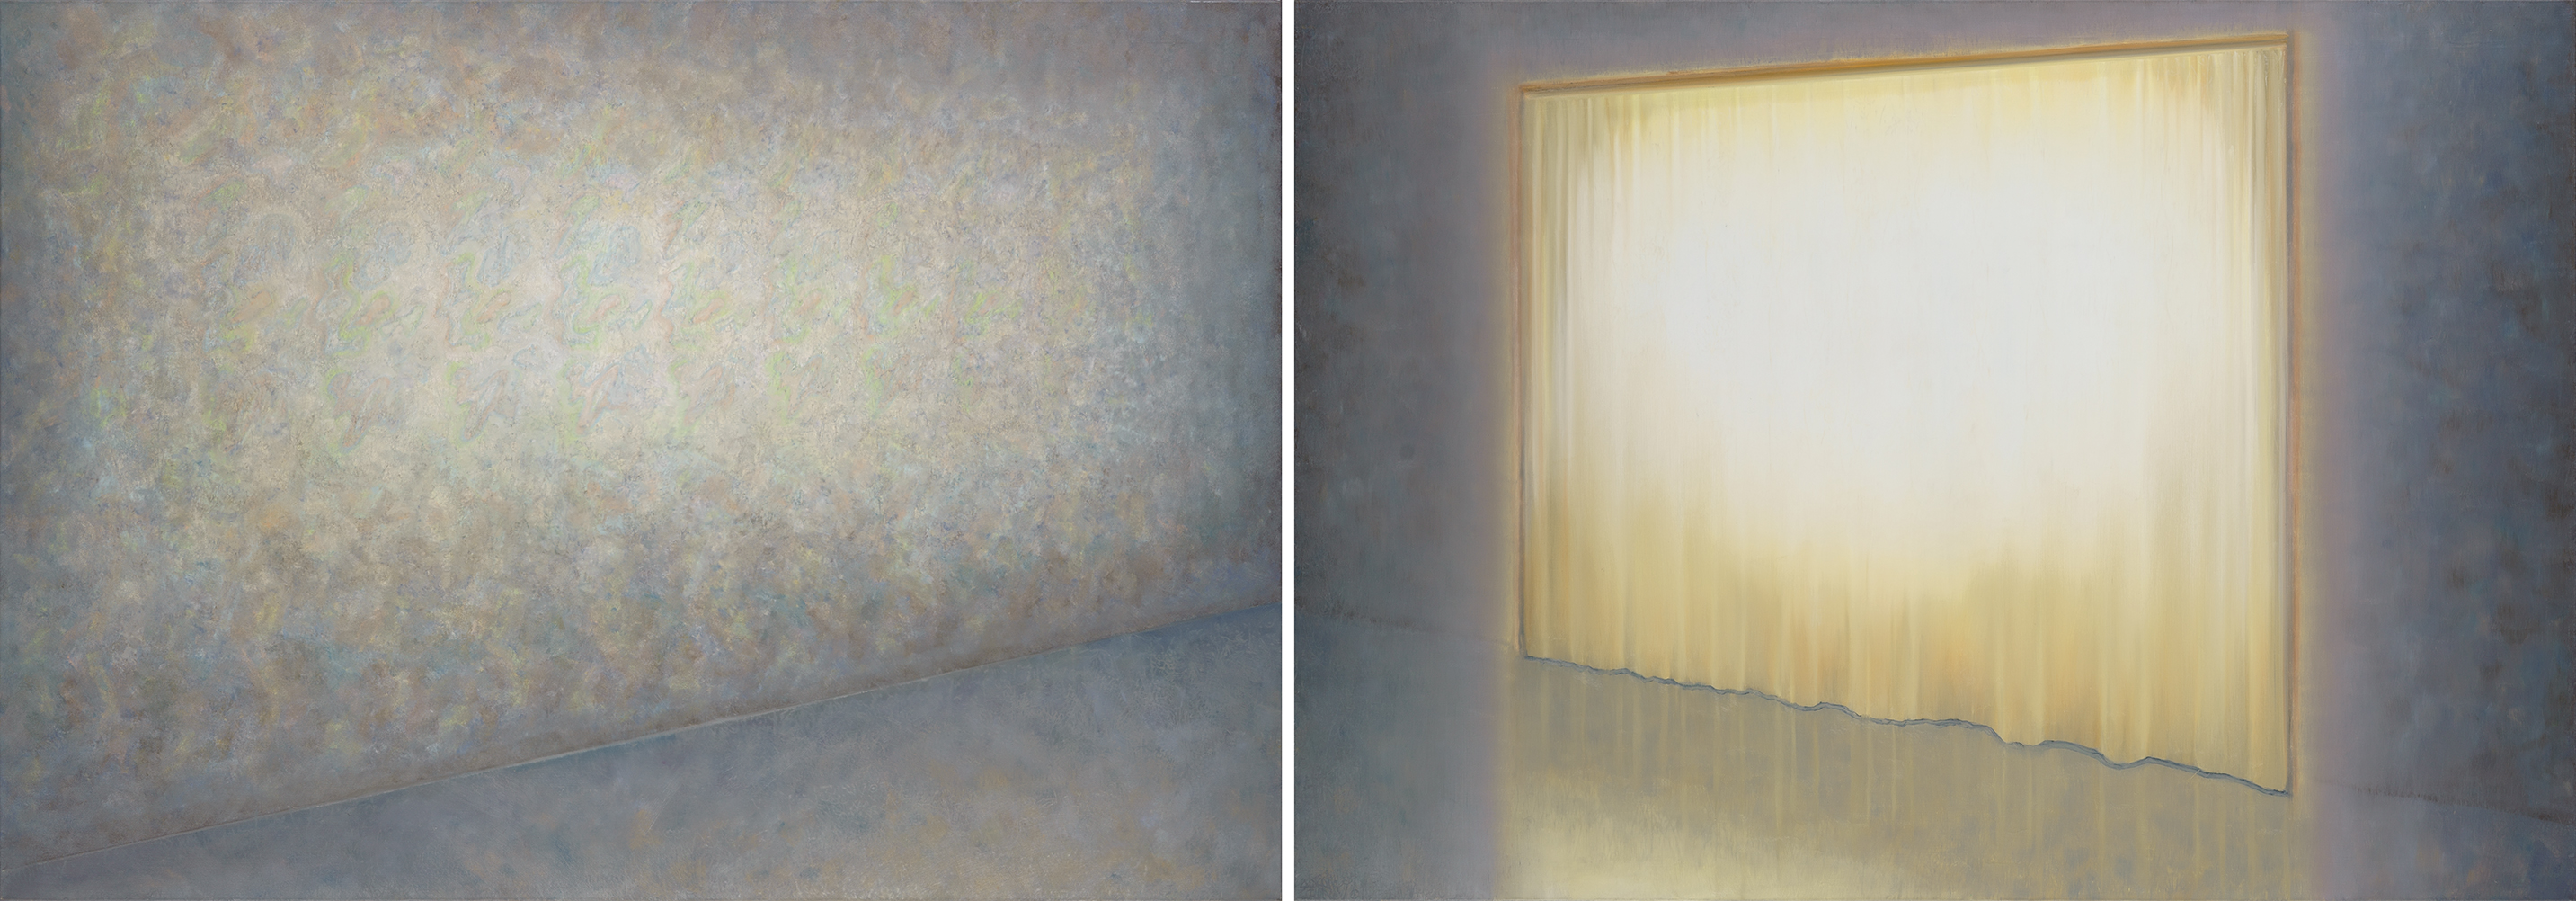 room with yellow curtain and wallpaper o,c. 140x400cm. diptich. 2001